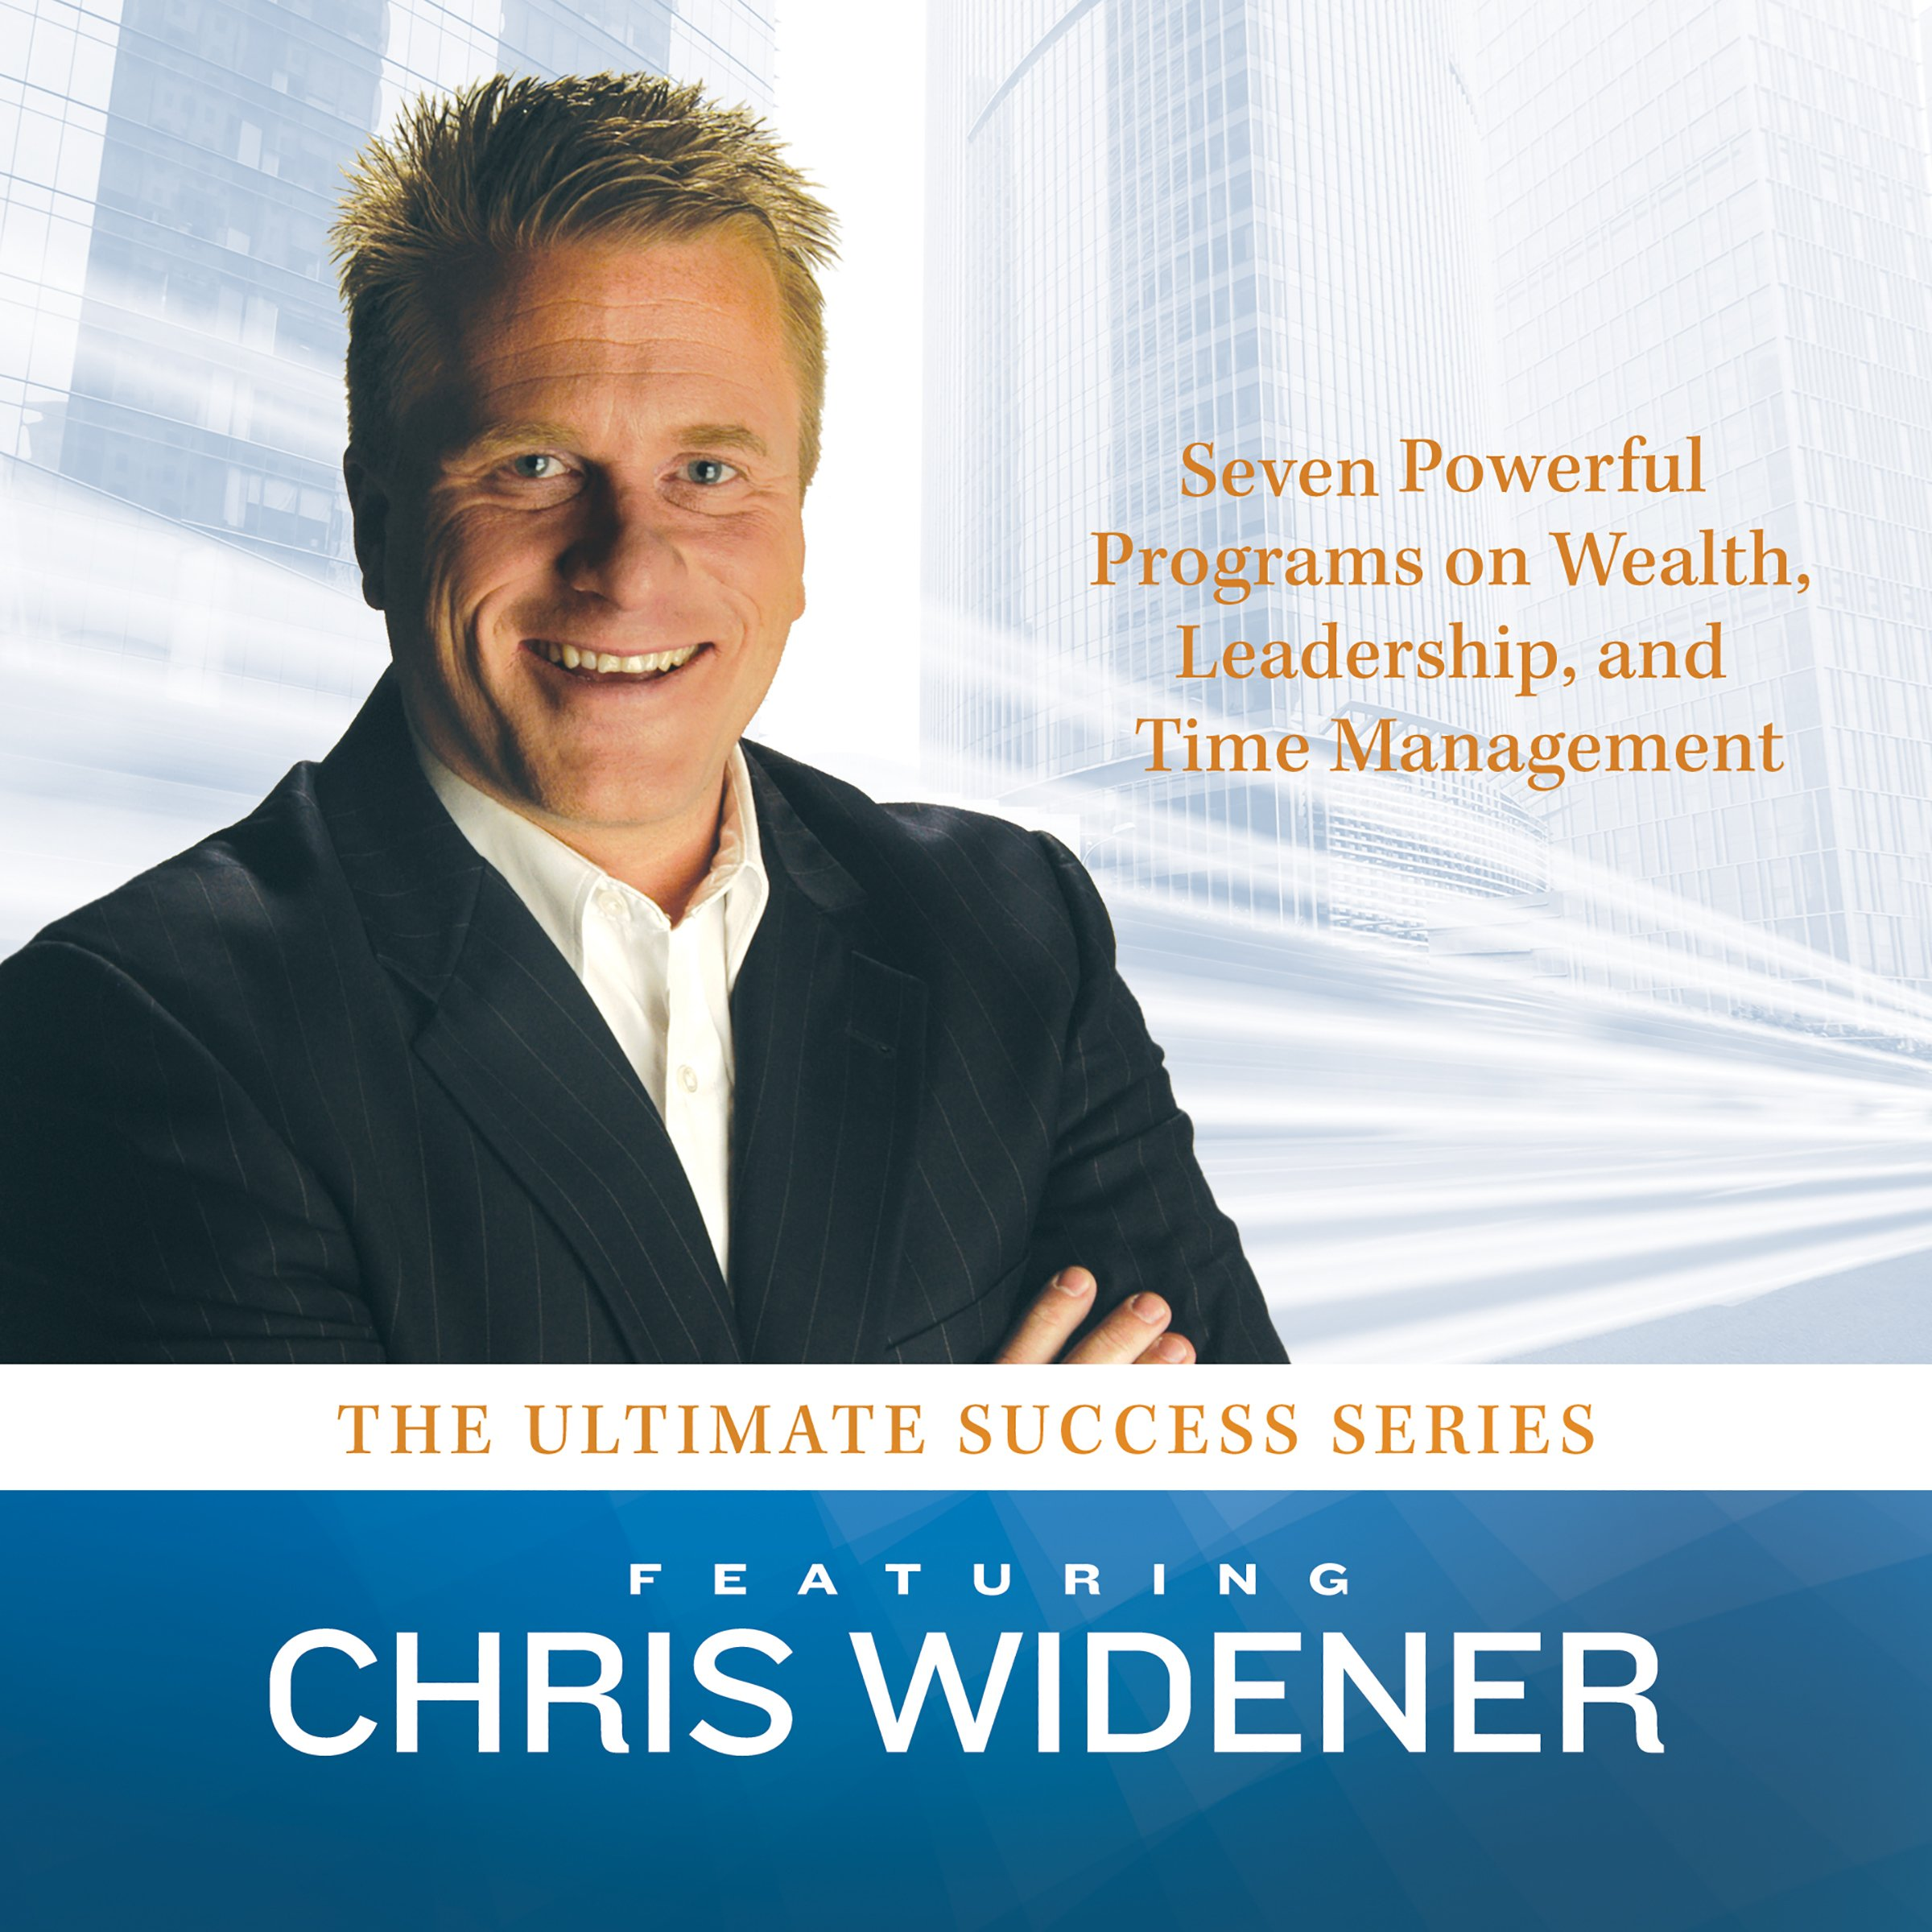 The Ultimate Success Series: 7 Powerful Programs on Wealth, Leadership, and Time Management (Made for Success series)